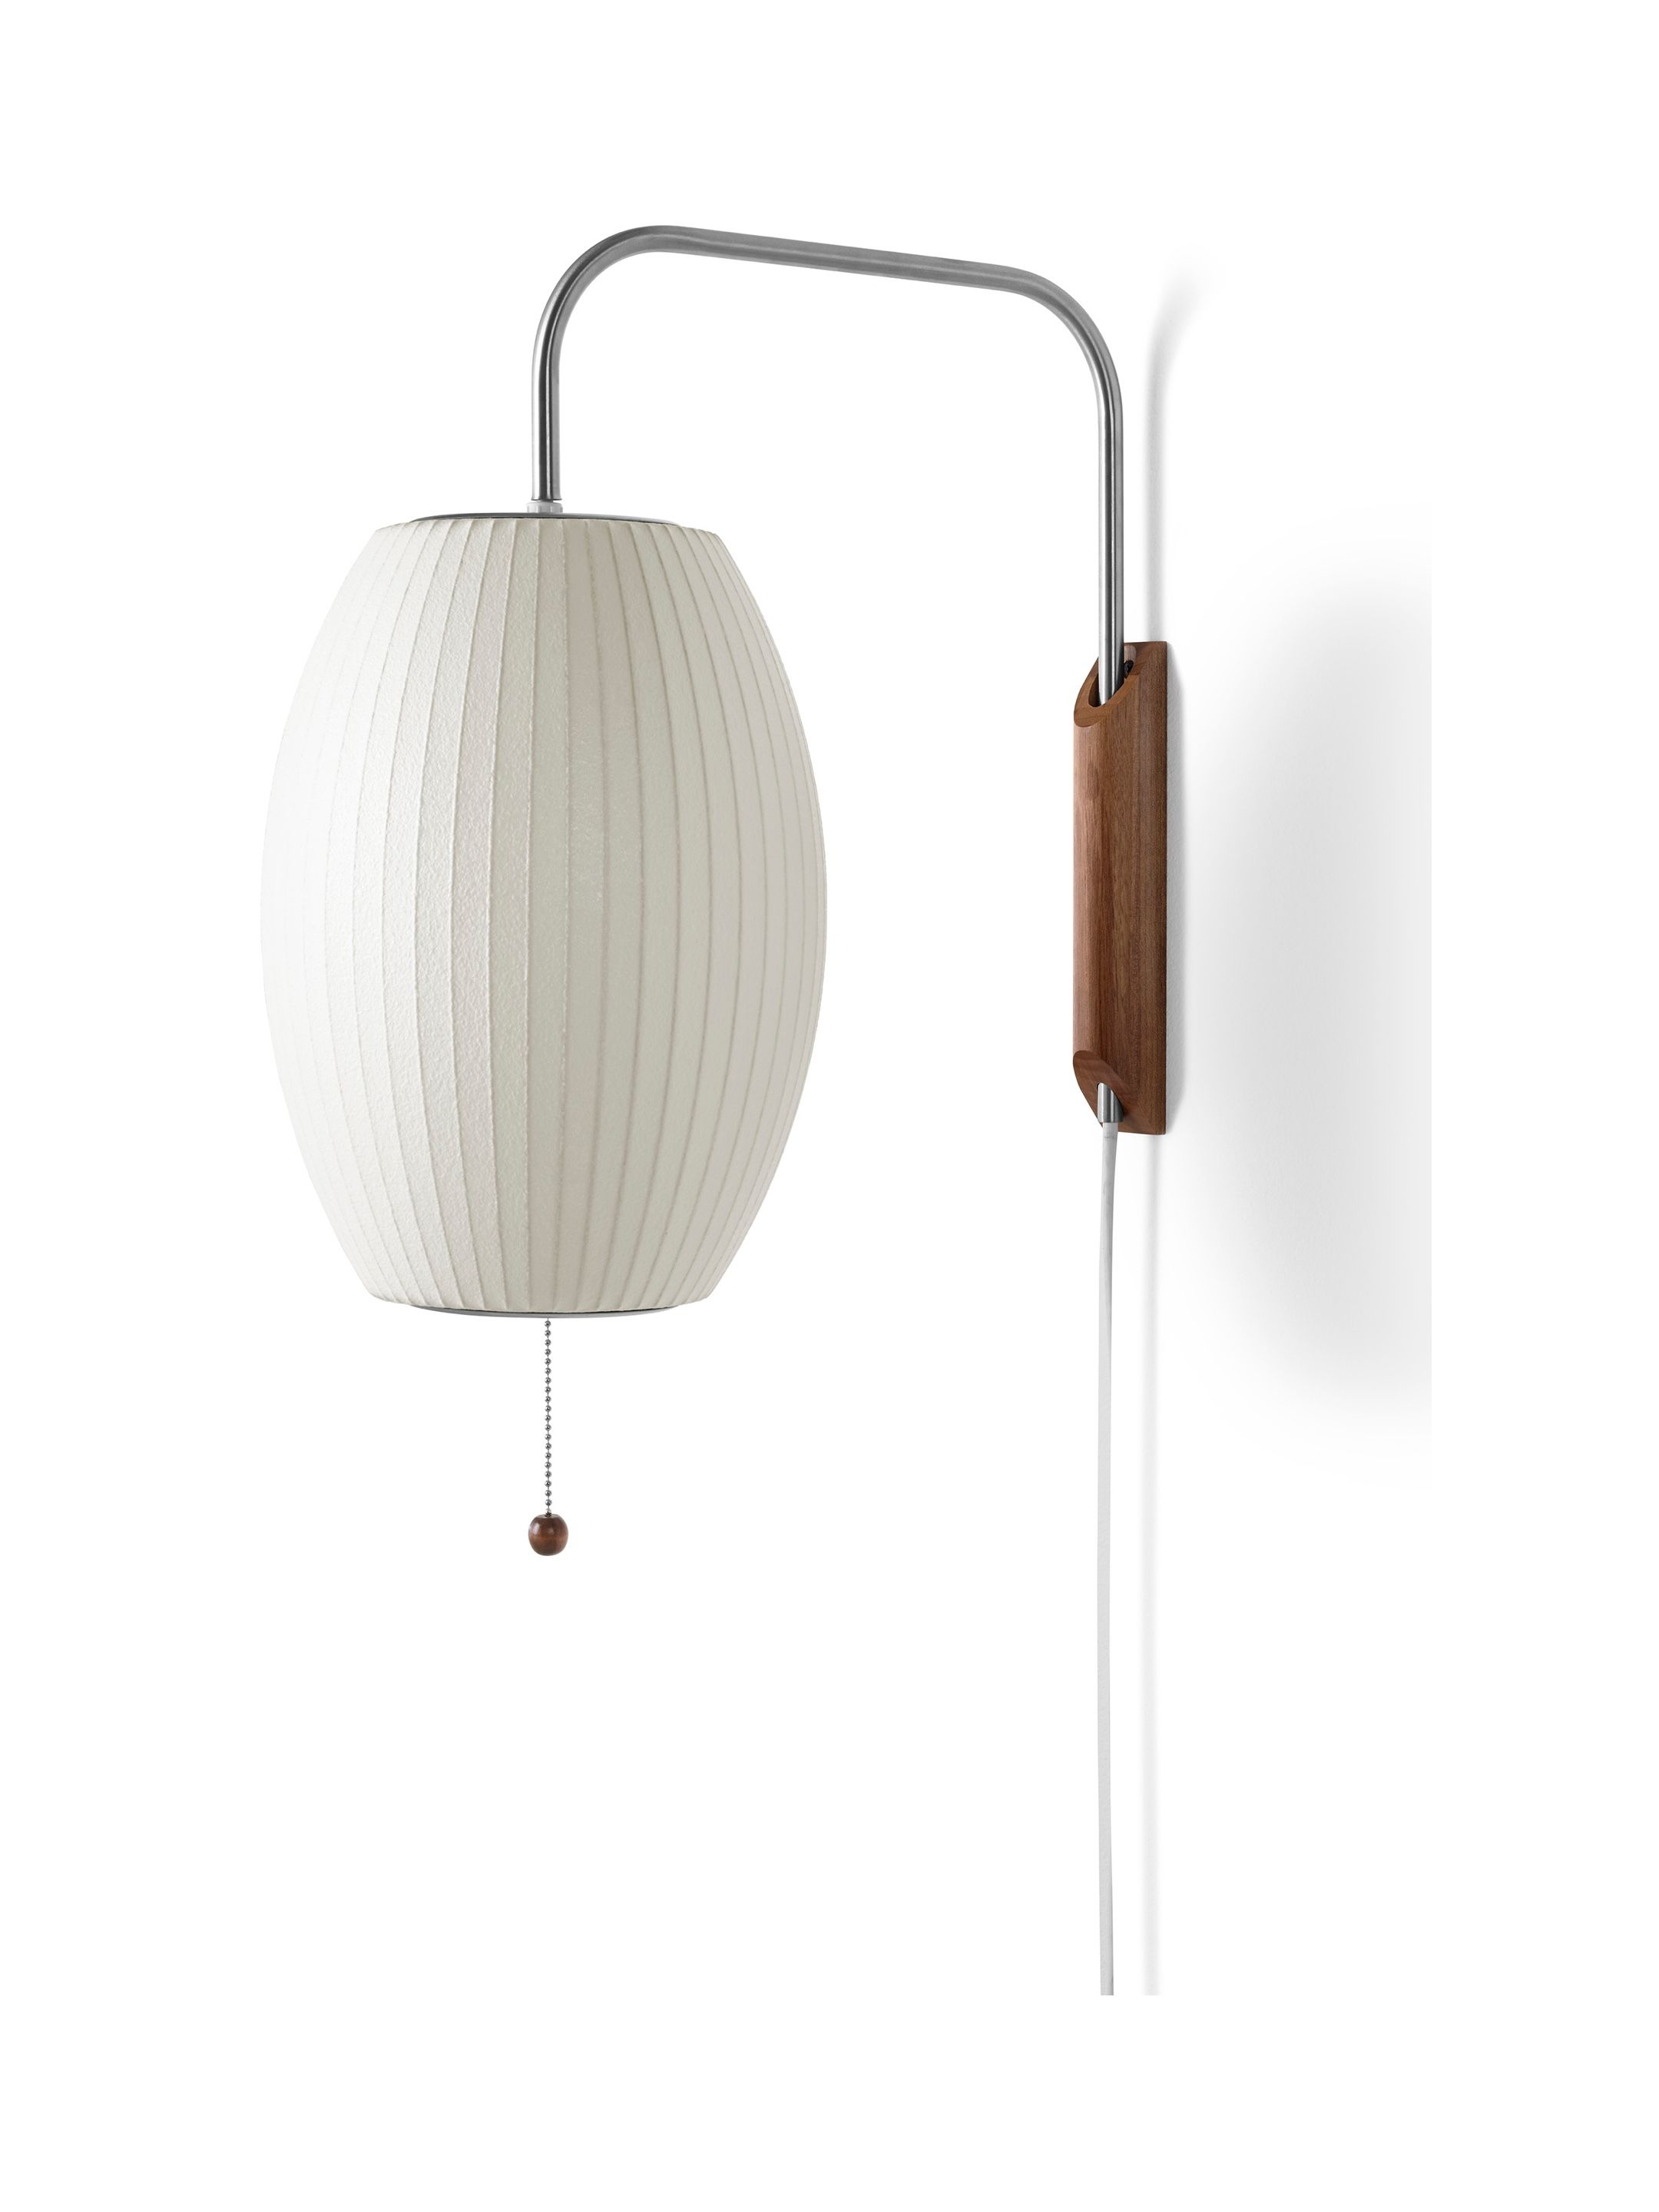 Nelson Cigar Wall Sconce Pendant Sconce Wall Sconces Nelson Bubble Lamp